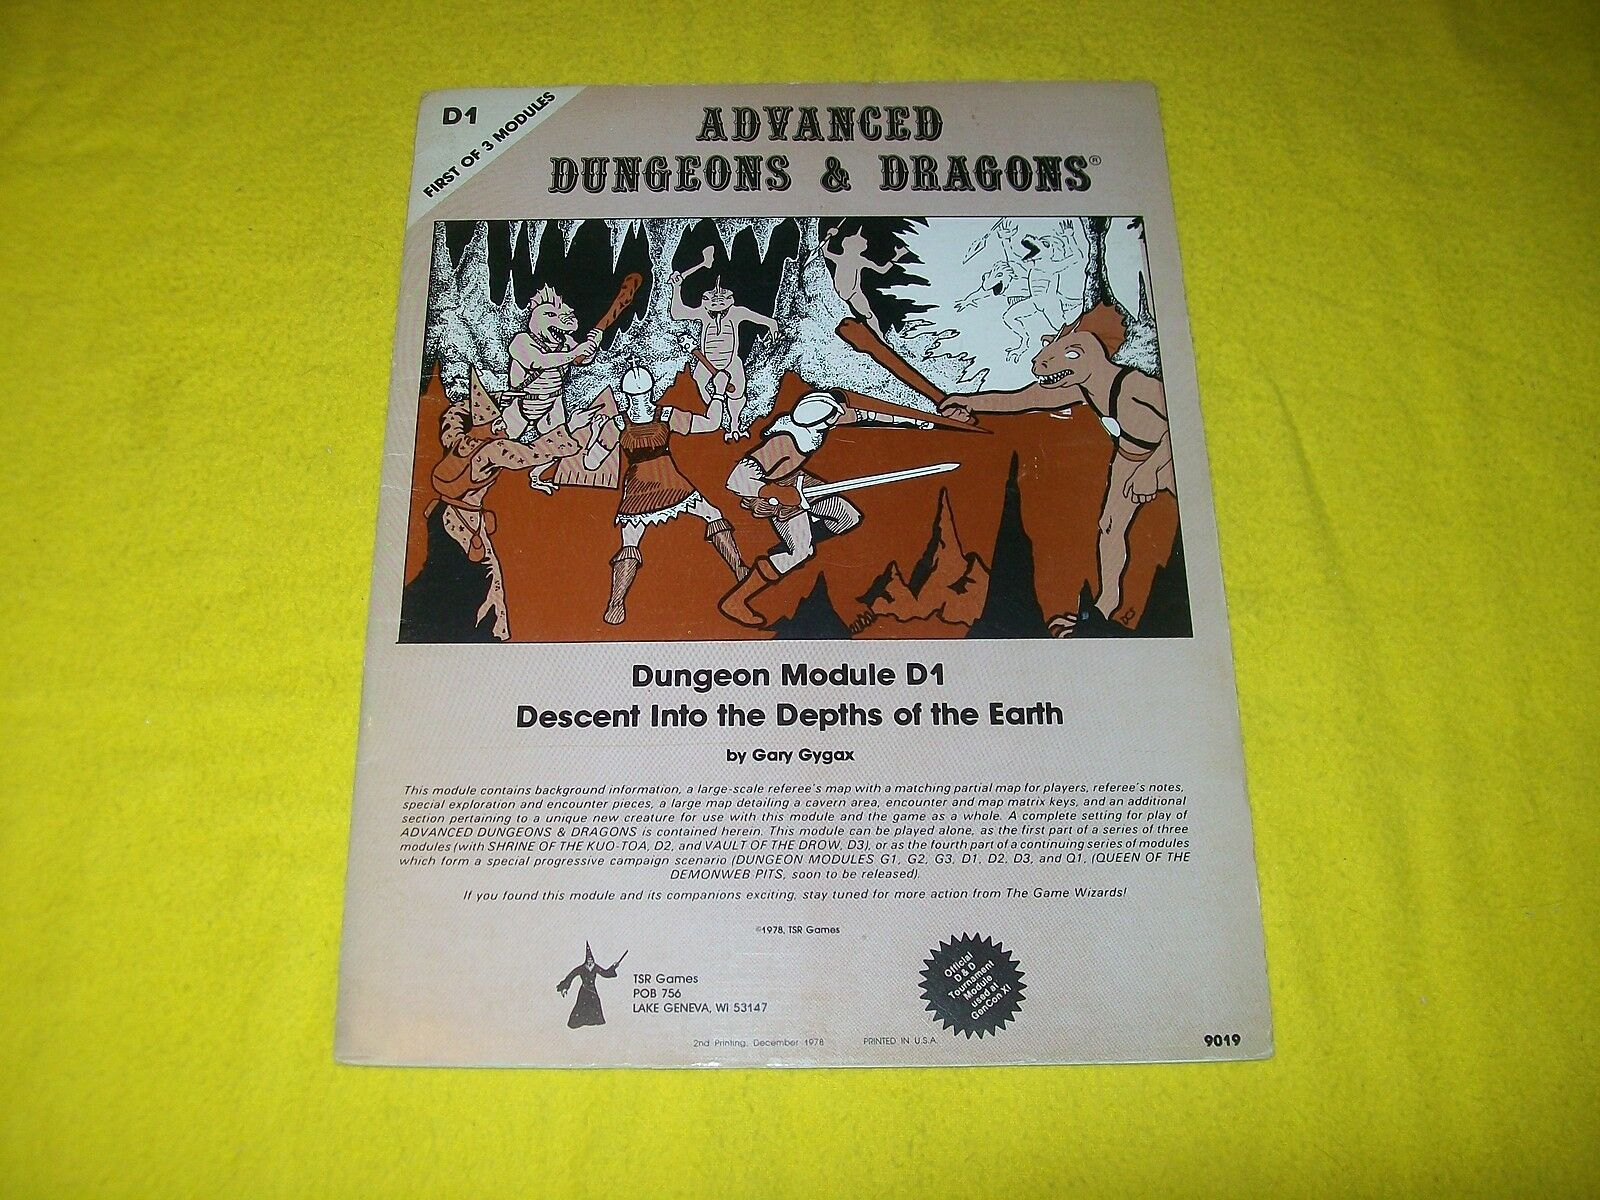 D1 DESCENT INTO THE DEPTHS OF THE EARTH DUNGEONS & DRAGONS AD&D - 4 MONOCHROME